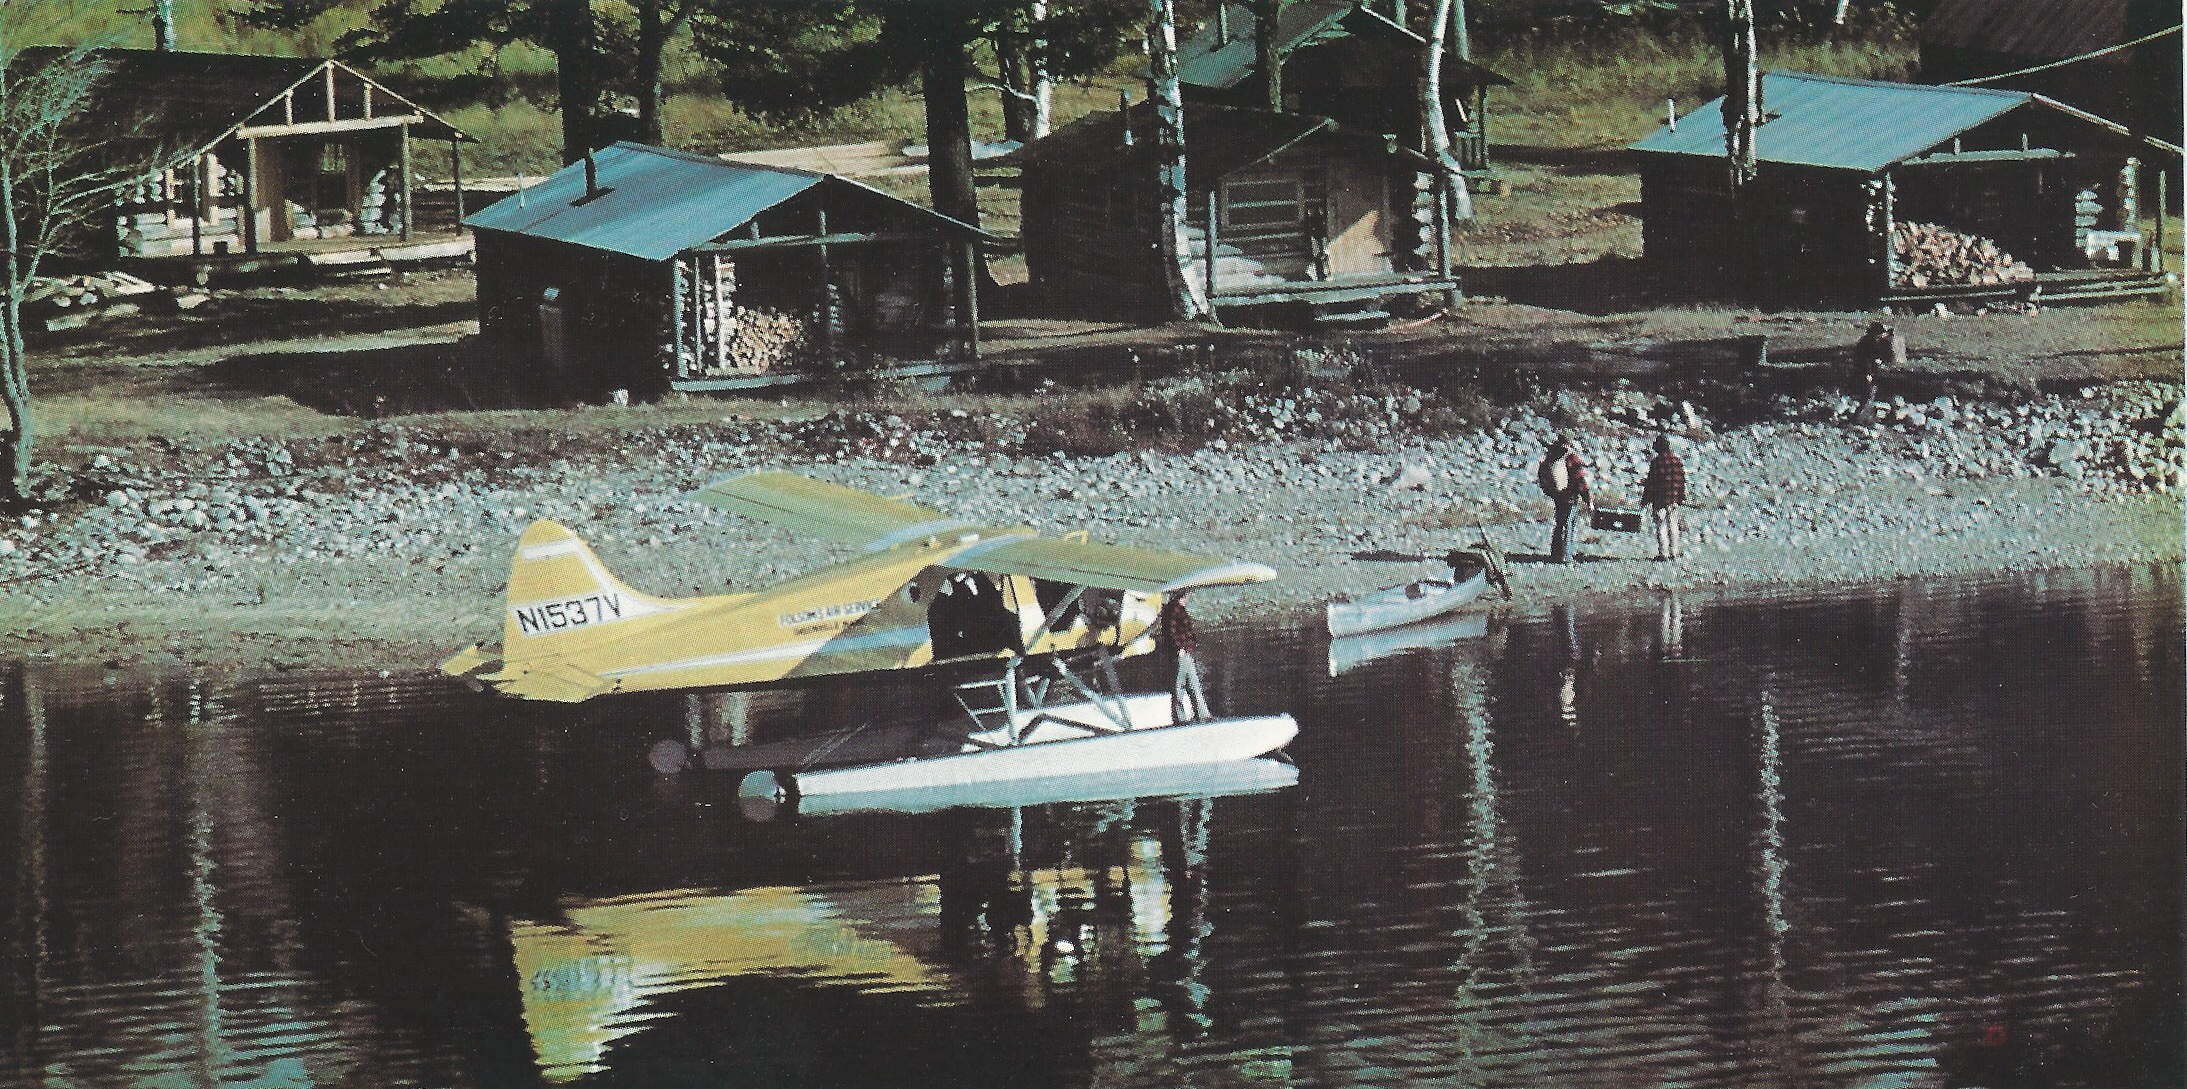 Pilots' choice for canoe-hauling: The De Havilland Beaver.